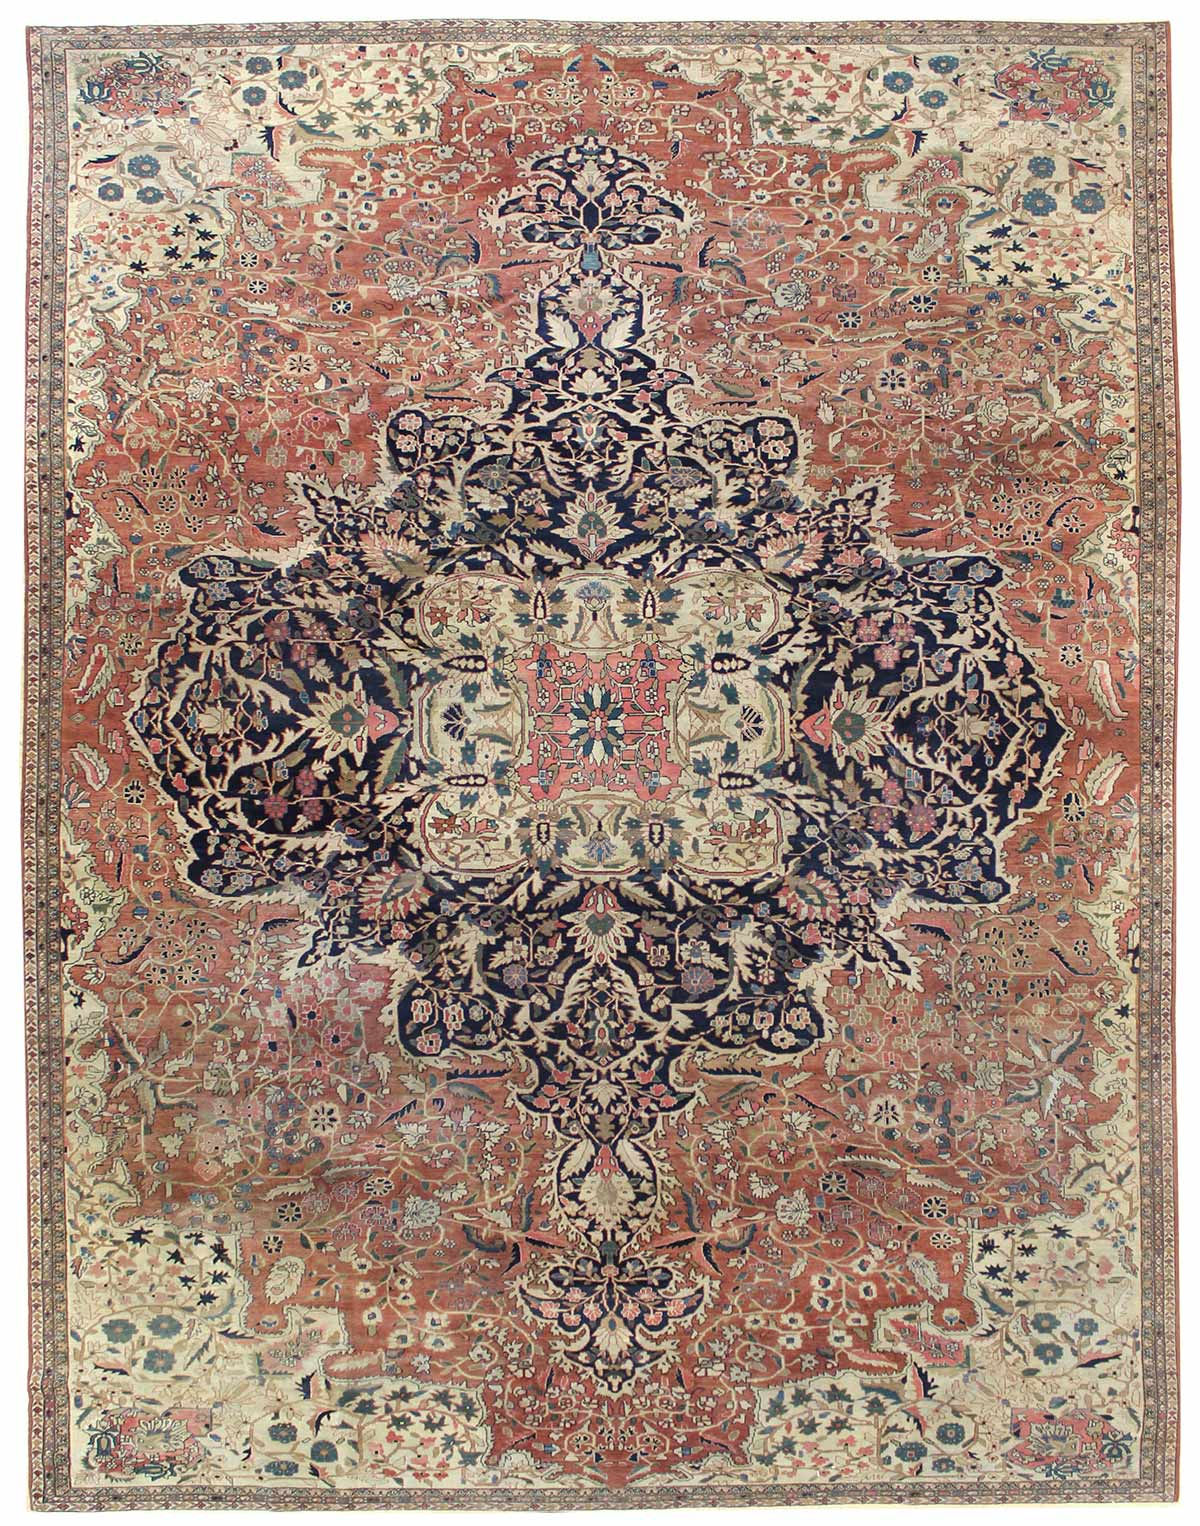 Antique Ferraghan Sarouk Handwoven Traditional Rug